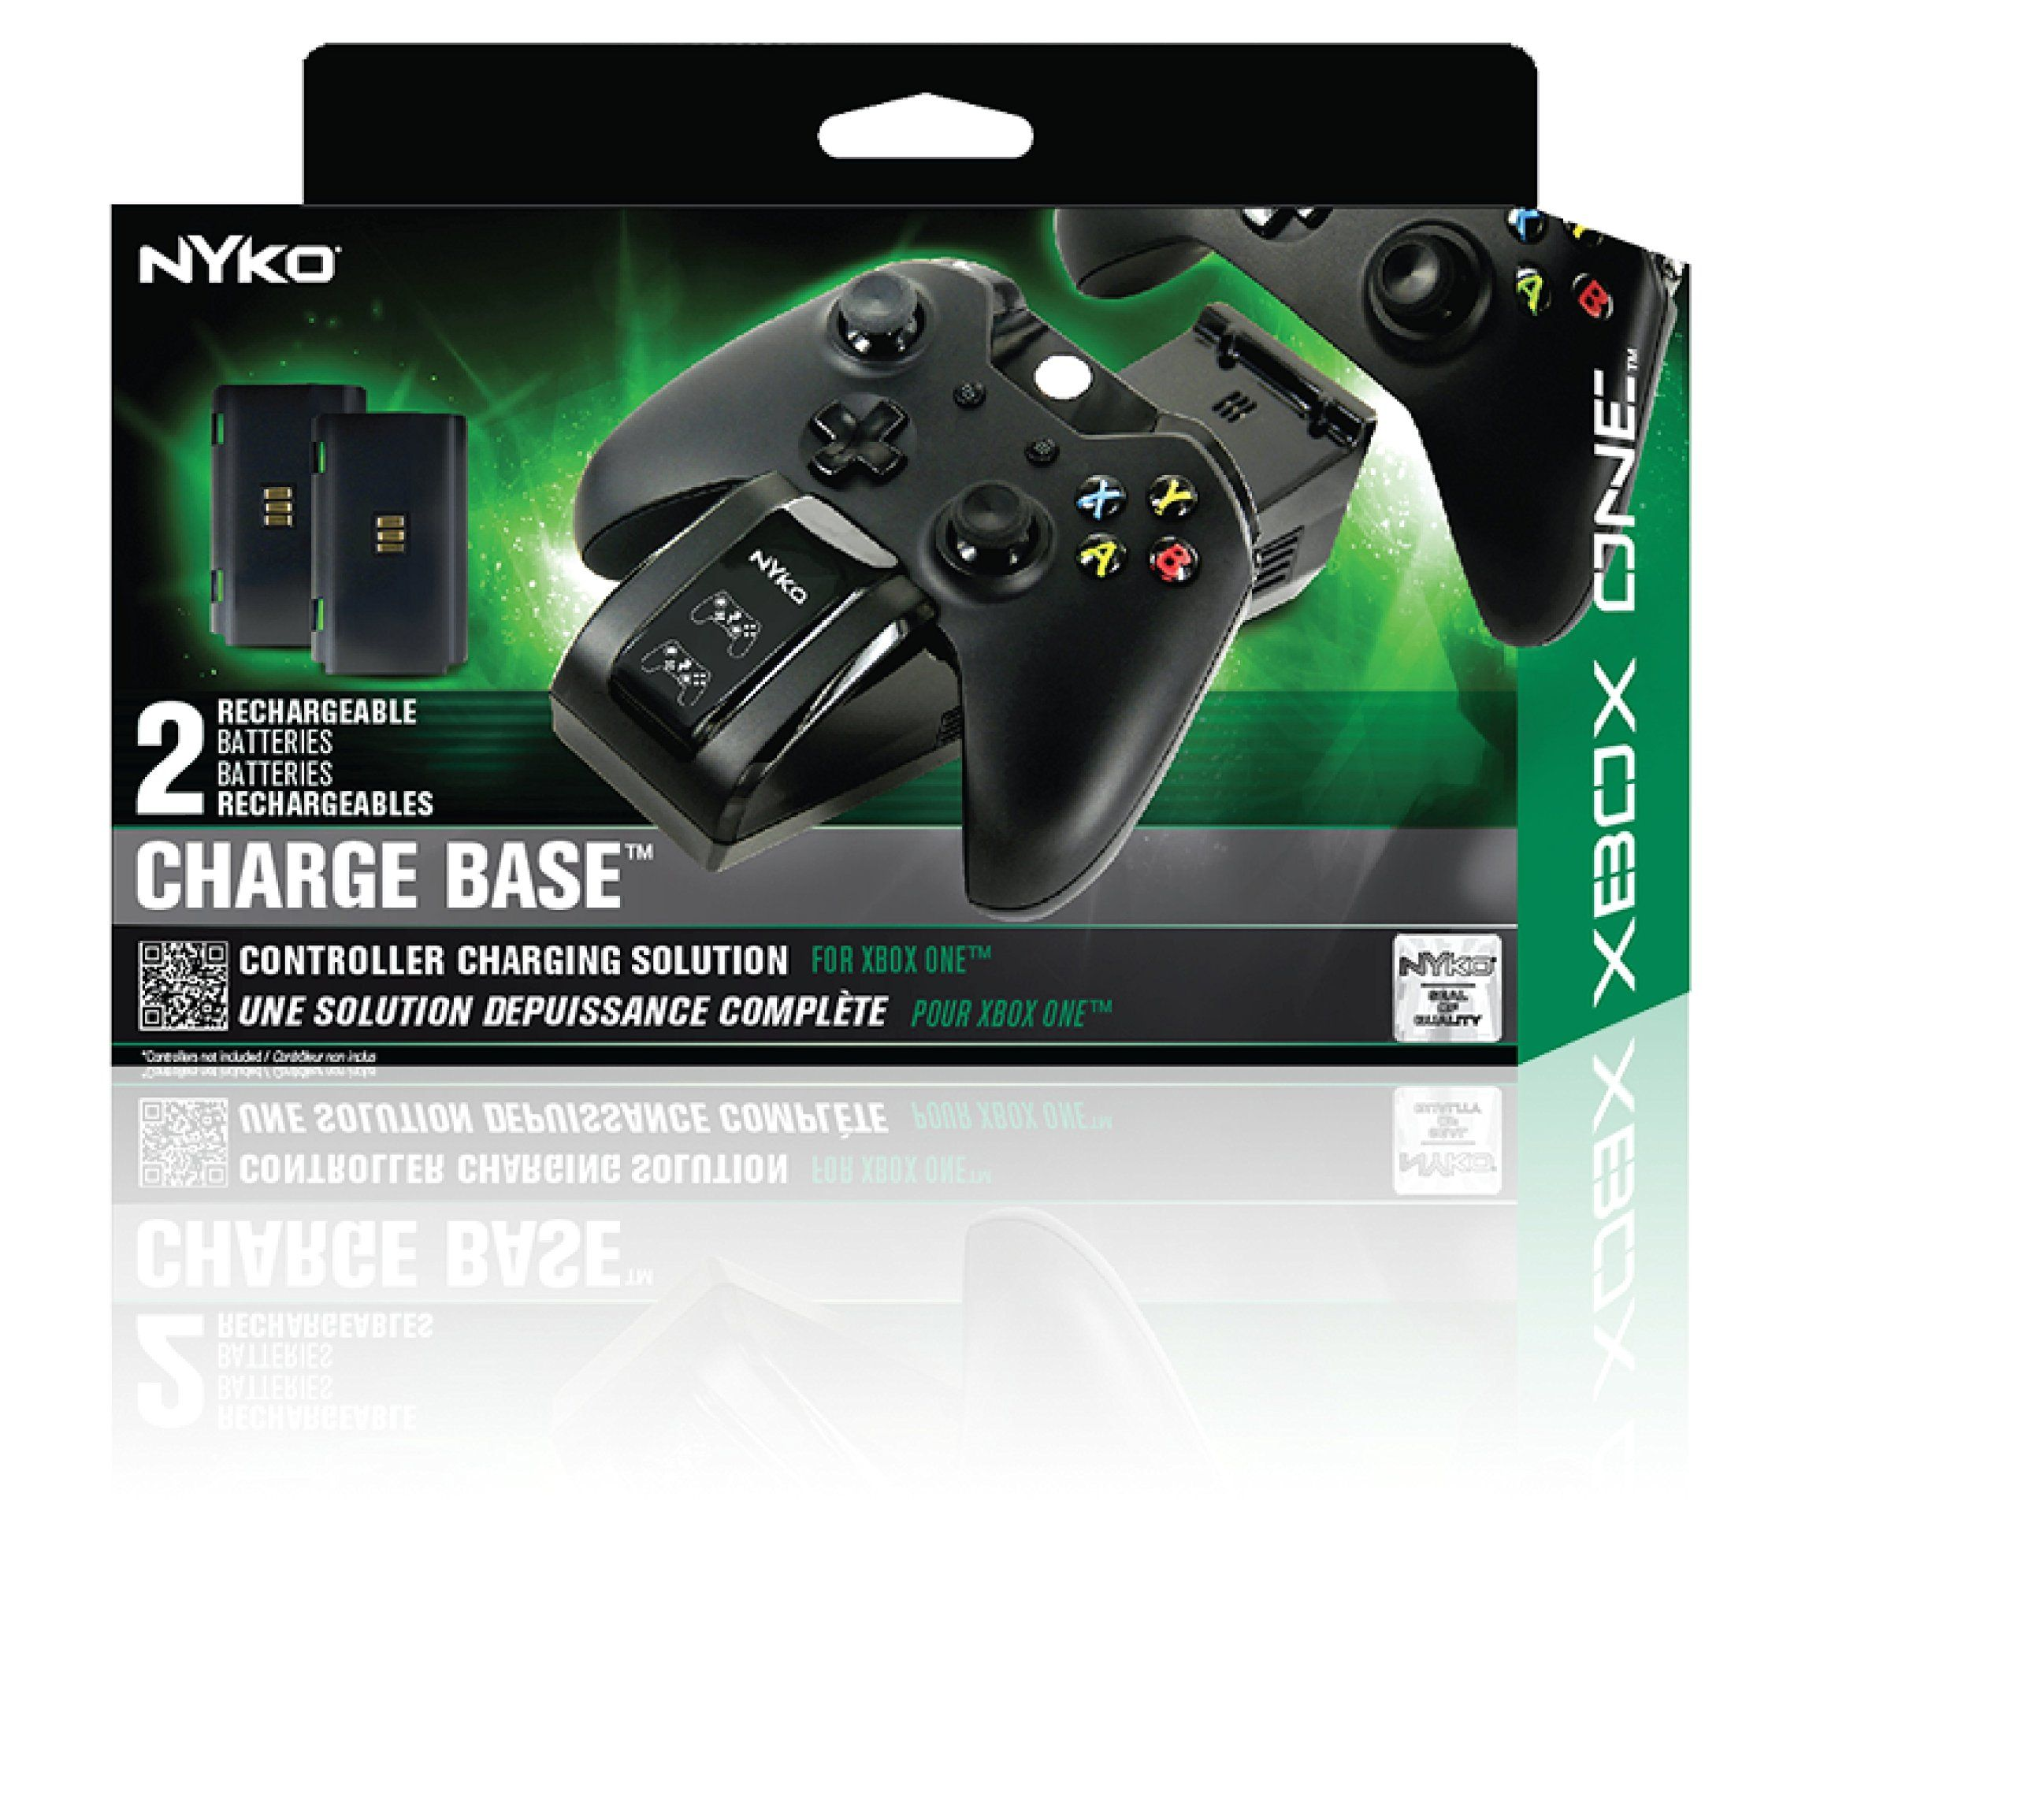 Xbox One Controller Chargeryccteam Xbox One Battery Pack Rechargeable For Xbox One Xbox One X Xbox One S Xbox One Elite Controller Xbox One Ch Games In 2019